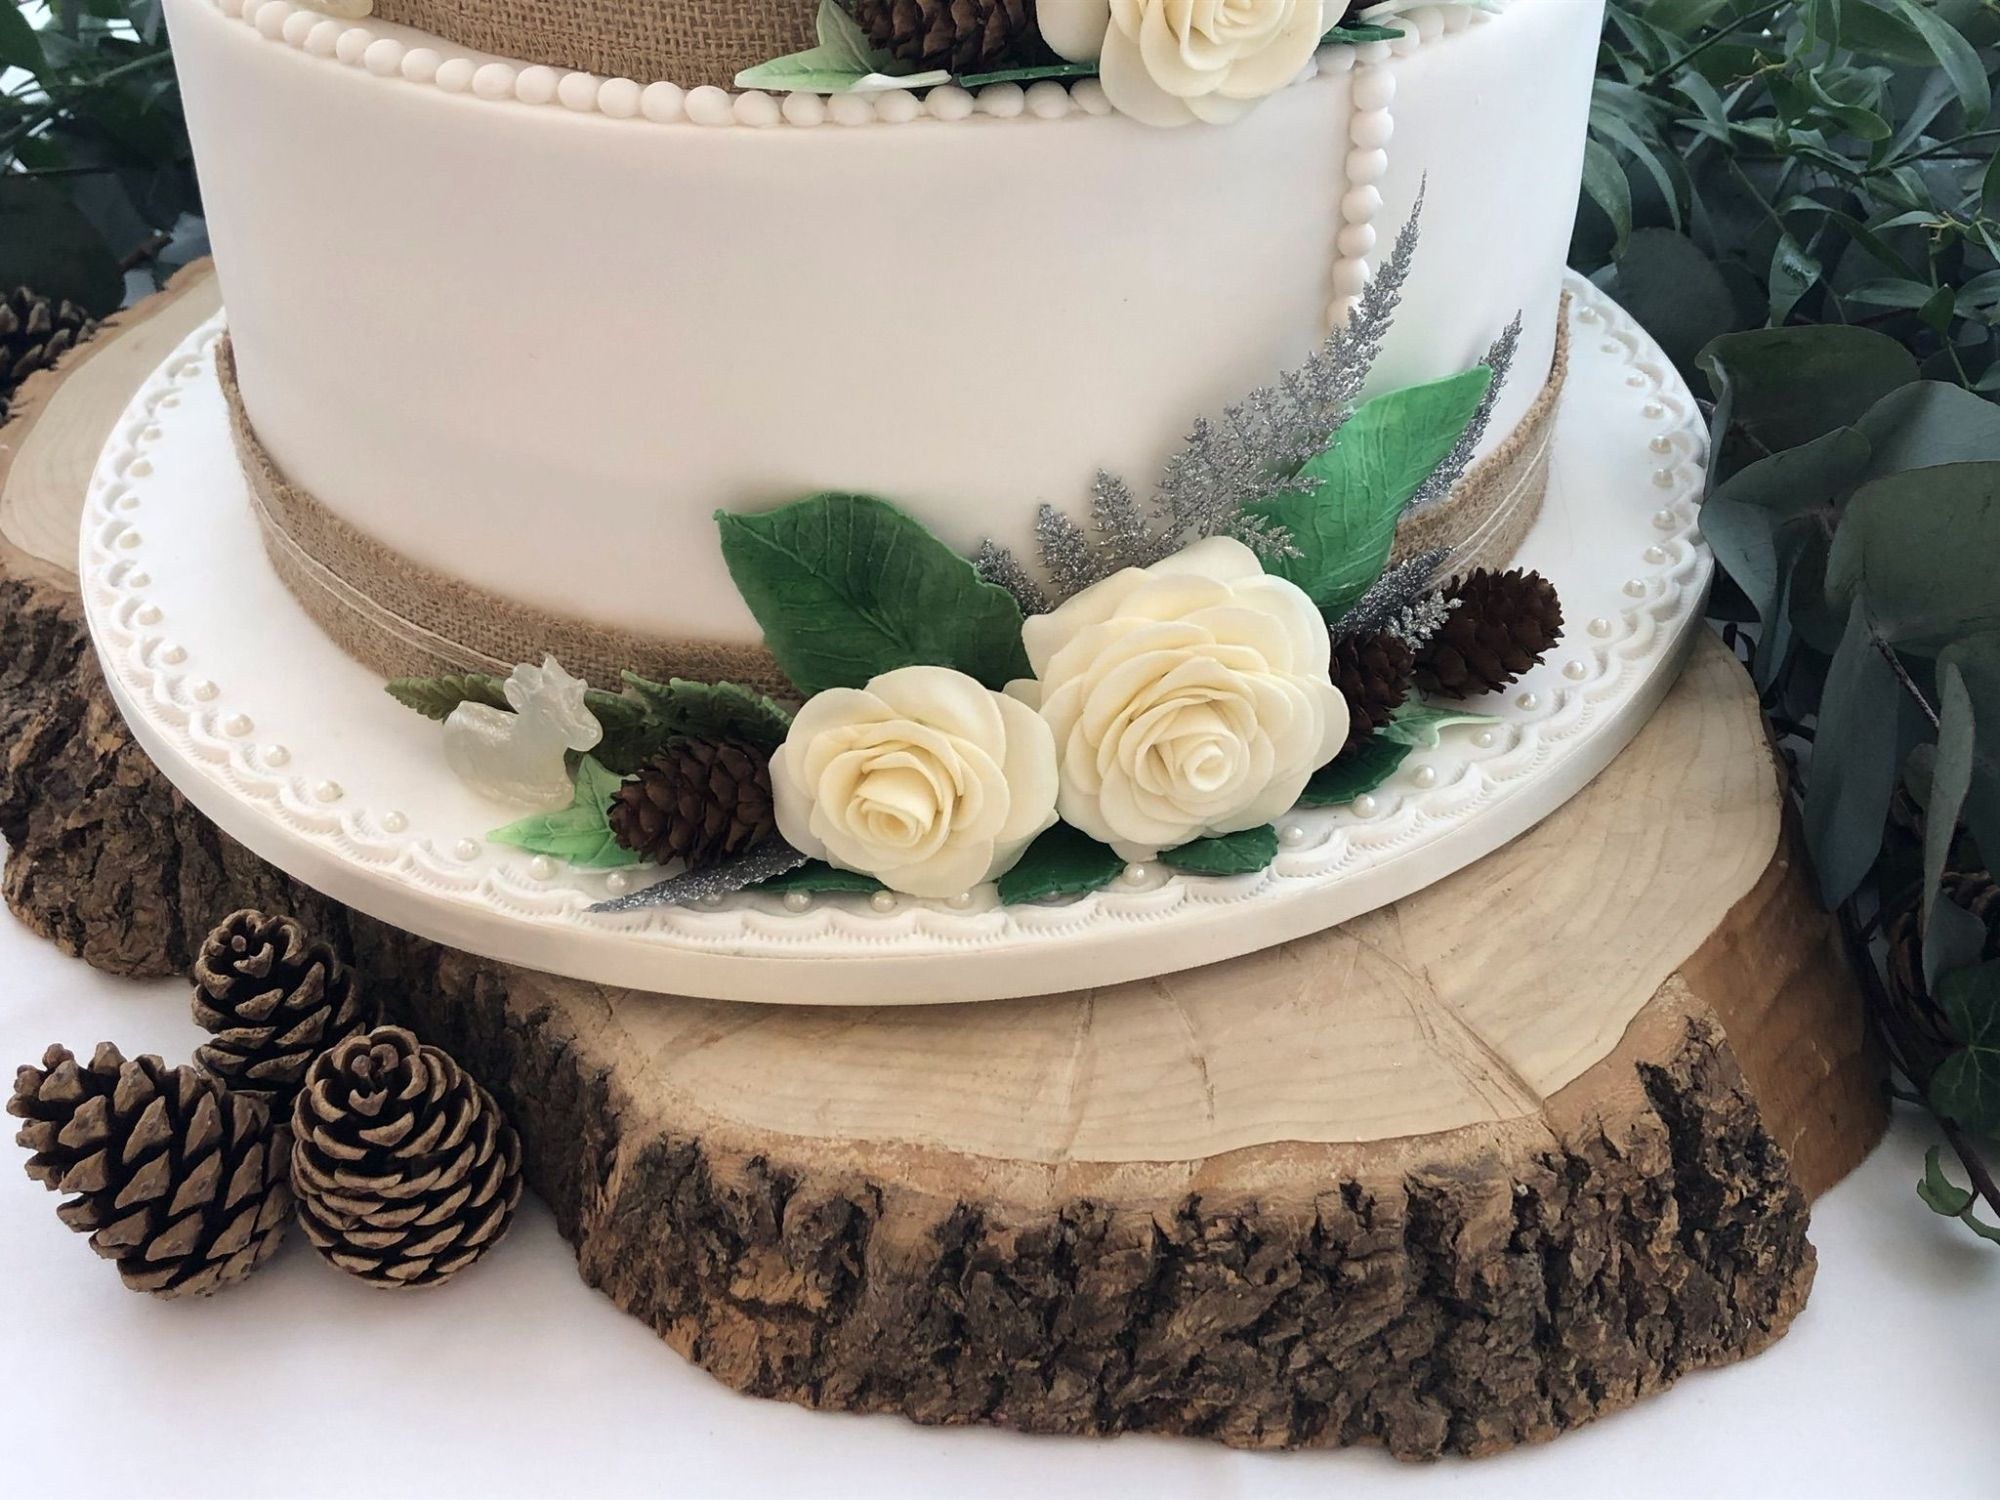 hessian wedding cake 1